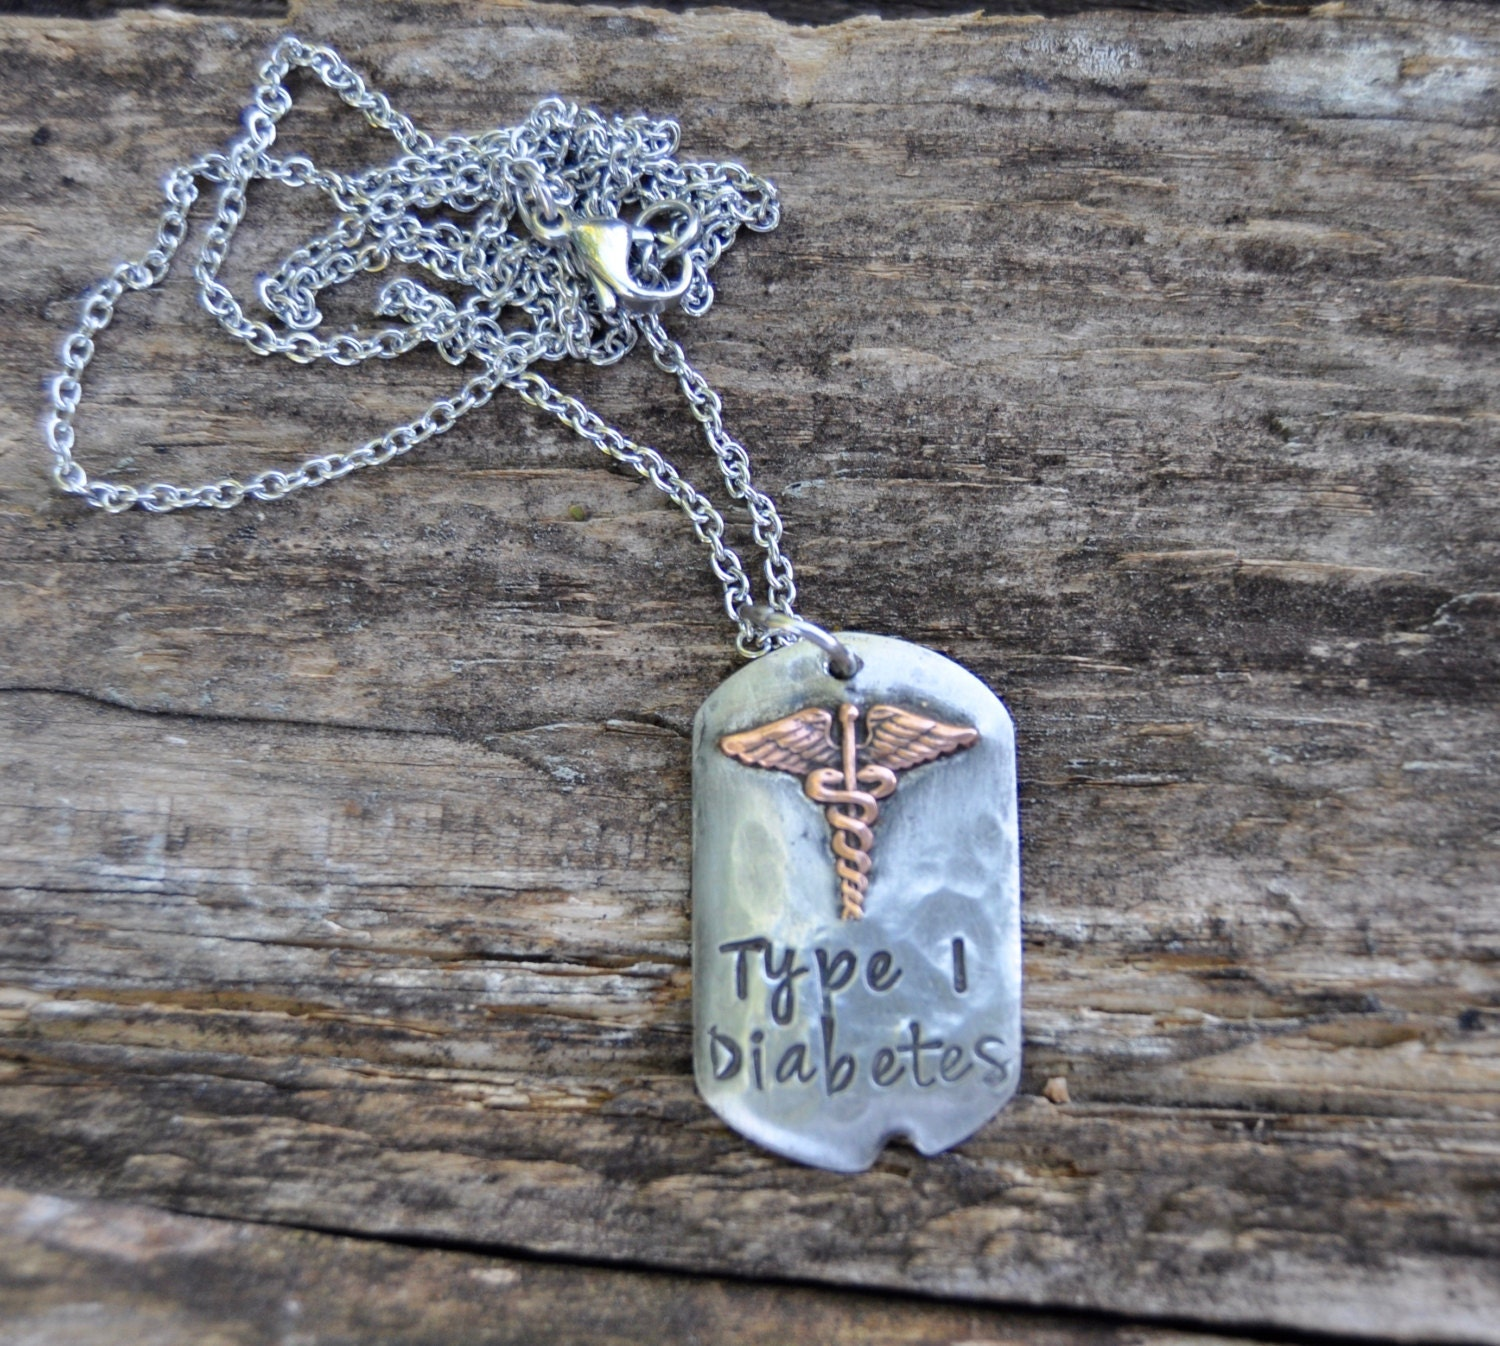 Medic Alert Necklace: Medical Alert Necklace. Medical ID Necklace For Woman Or Girl